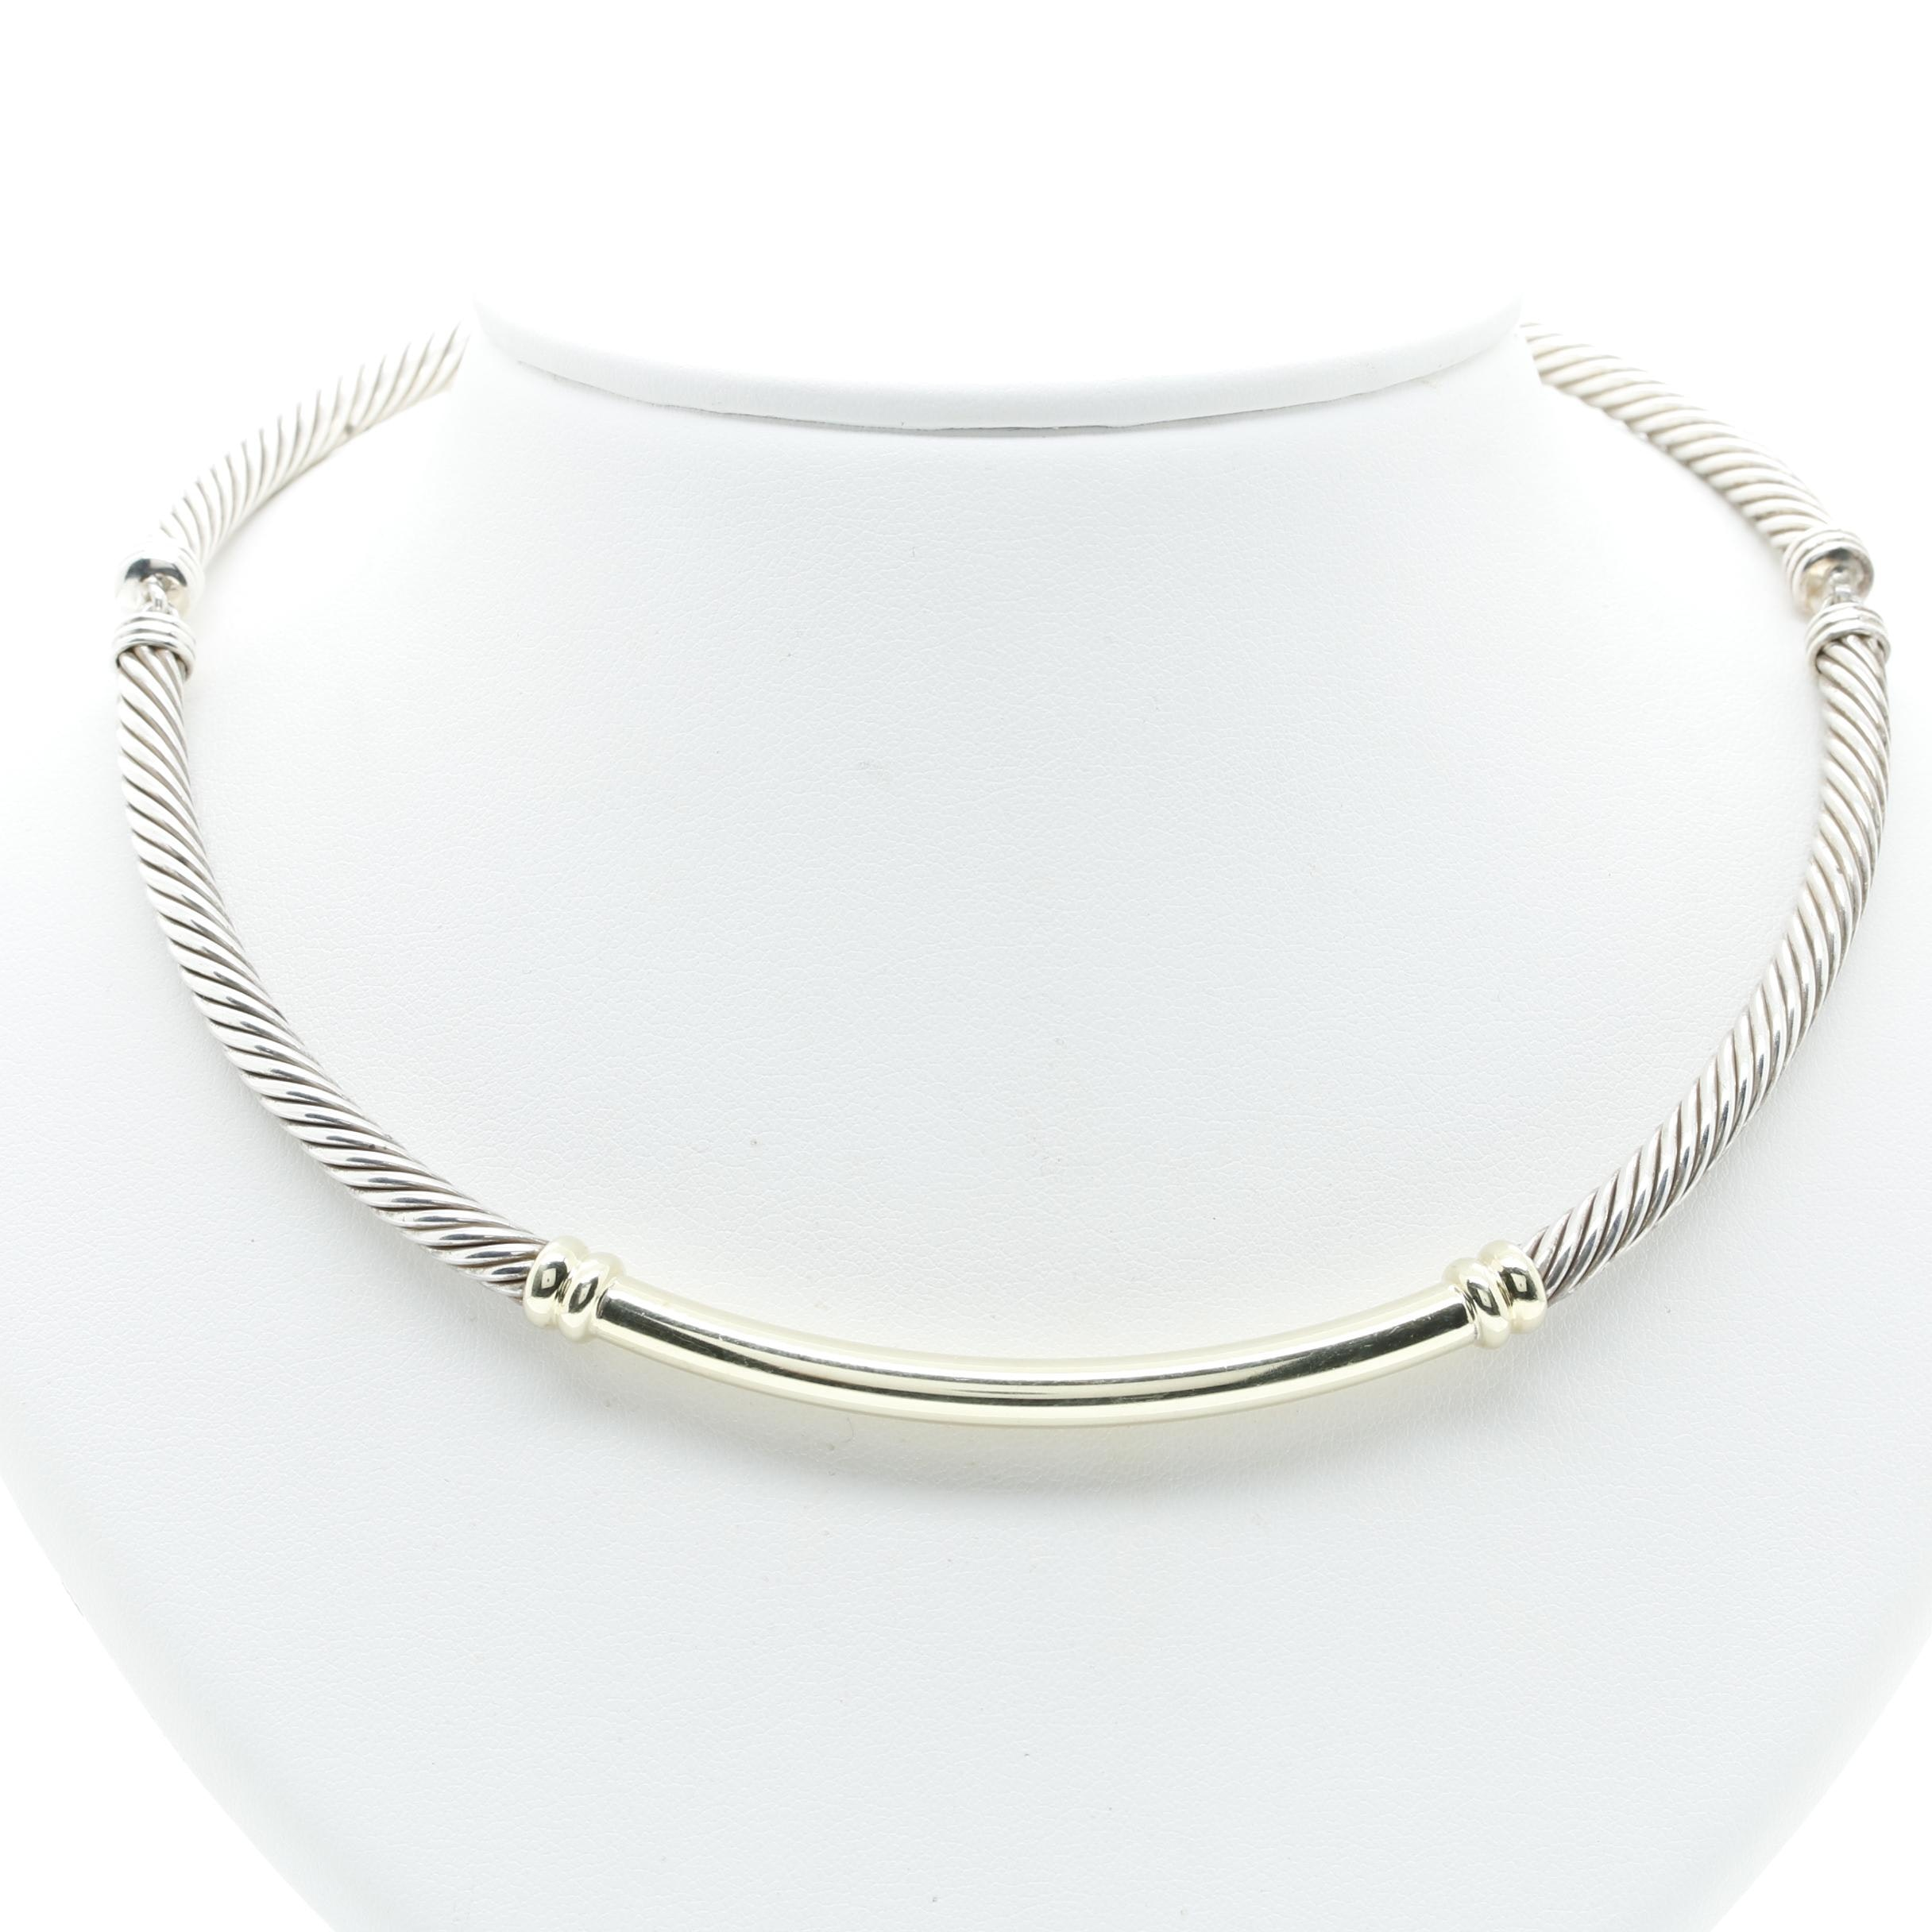 David Yurman Sterling Silver and 14K Yellow Gold Cable Station Choker Necklace